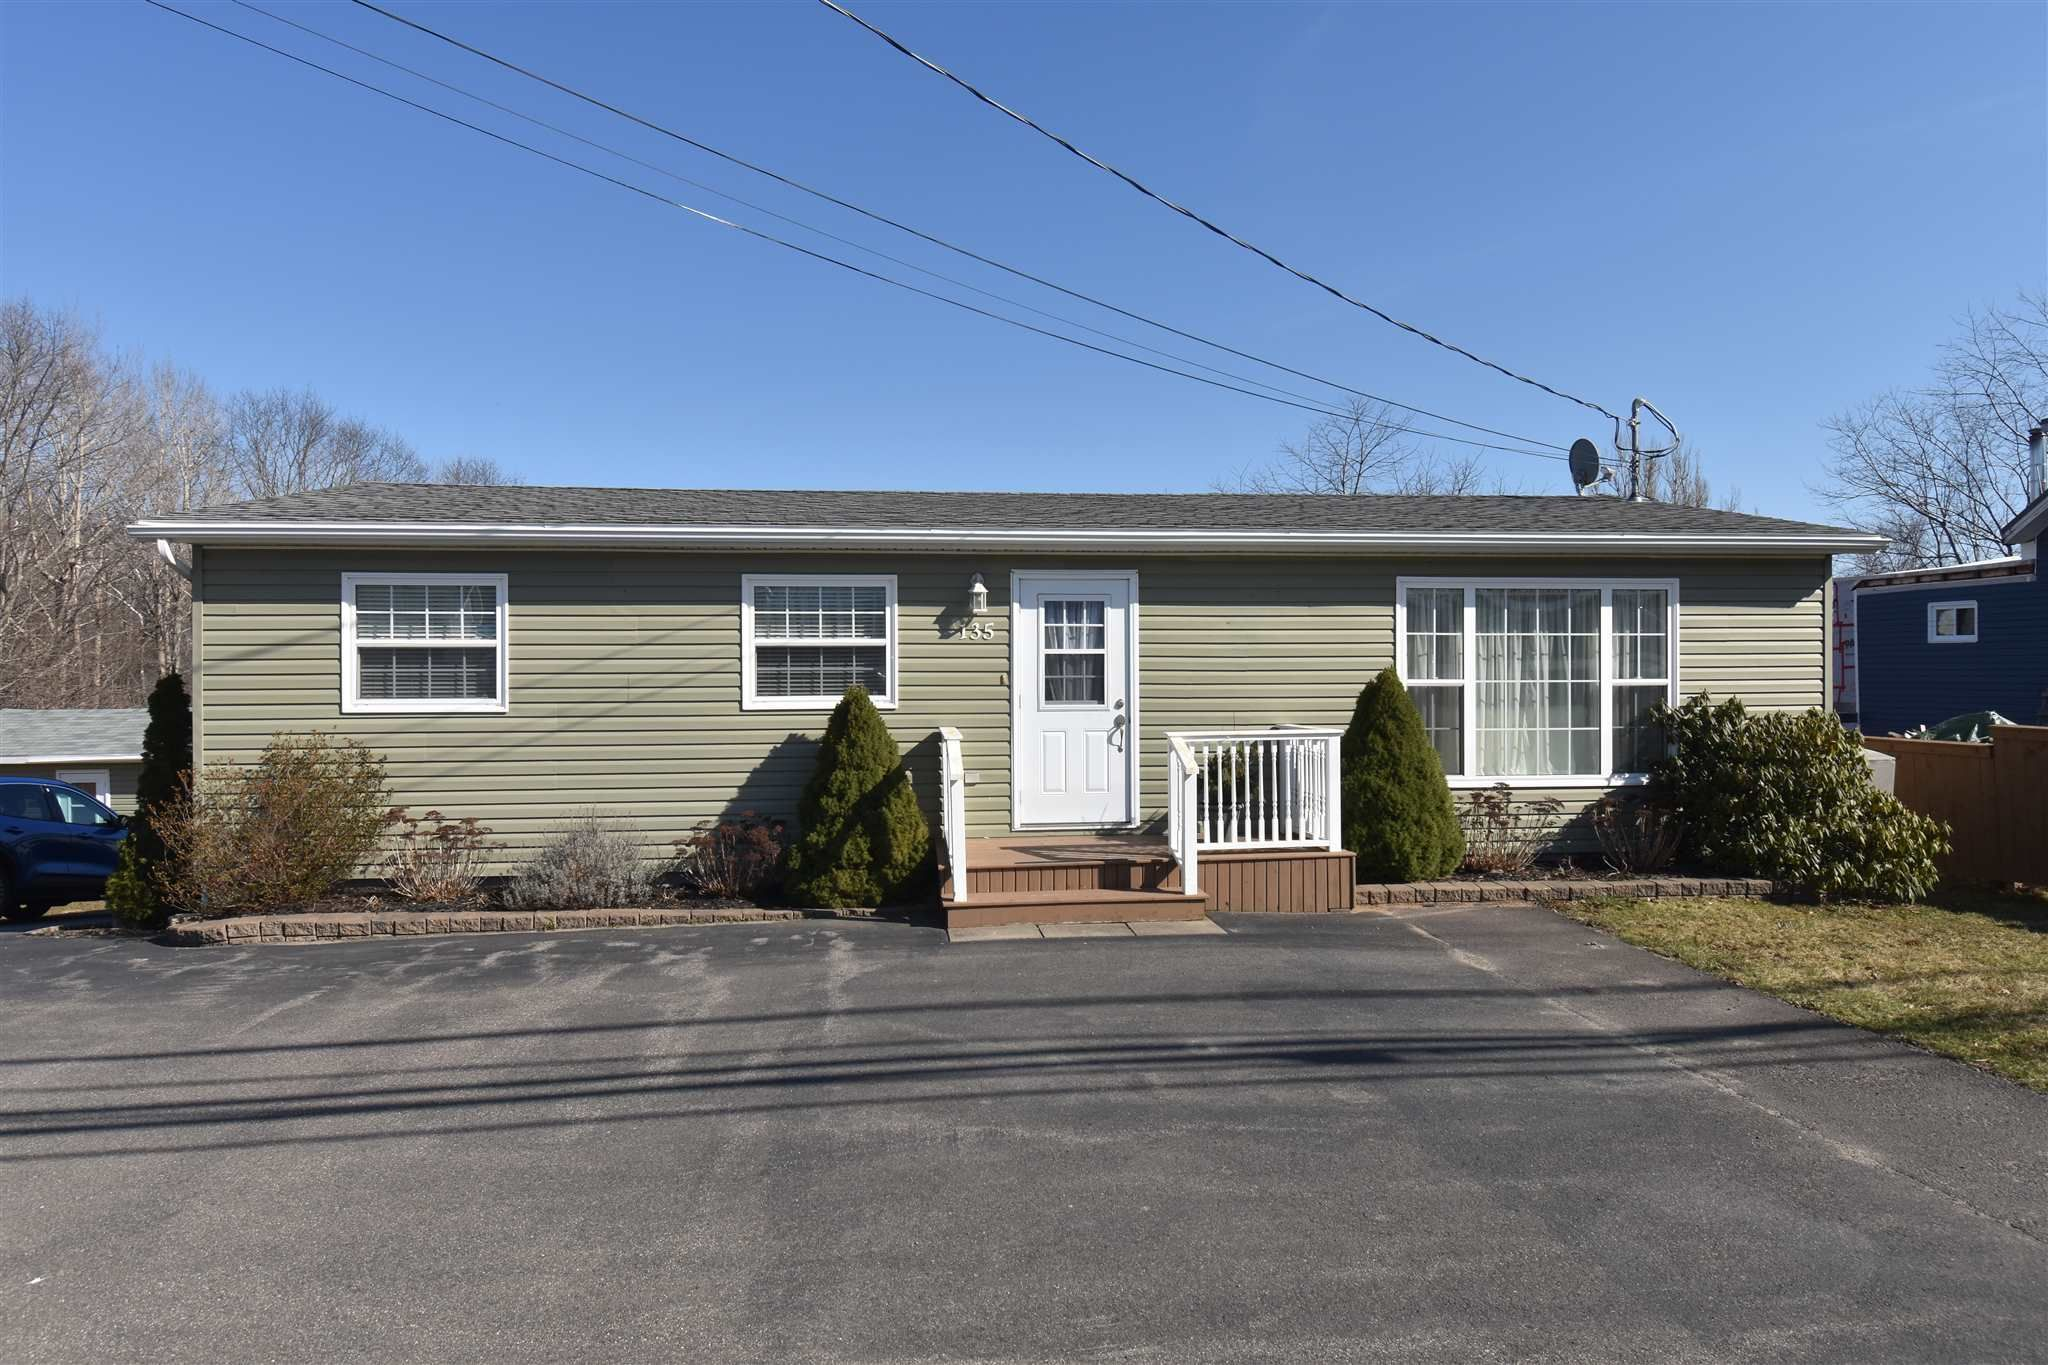 Main Photo: 135 Highway 303 in Digby: 401-Digby County Residential for sale (Annapolis Valley)  : MLS®# 202106687